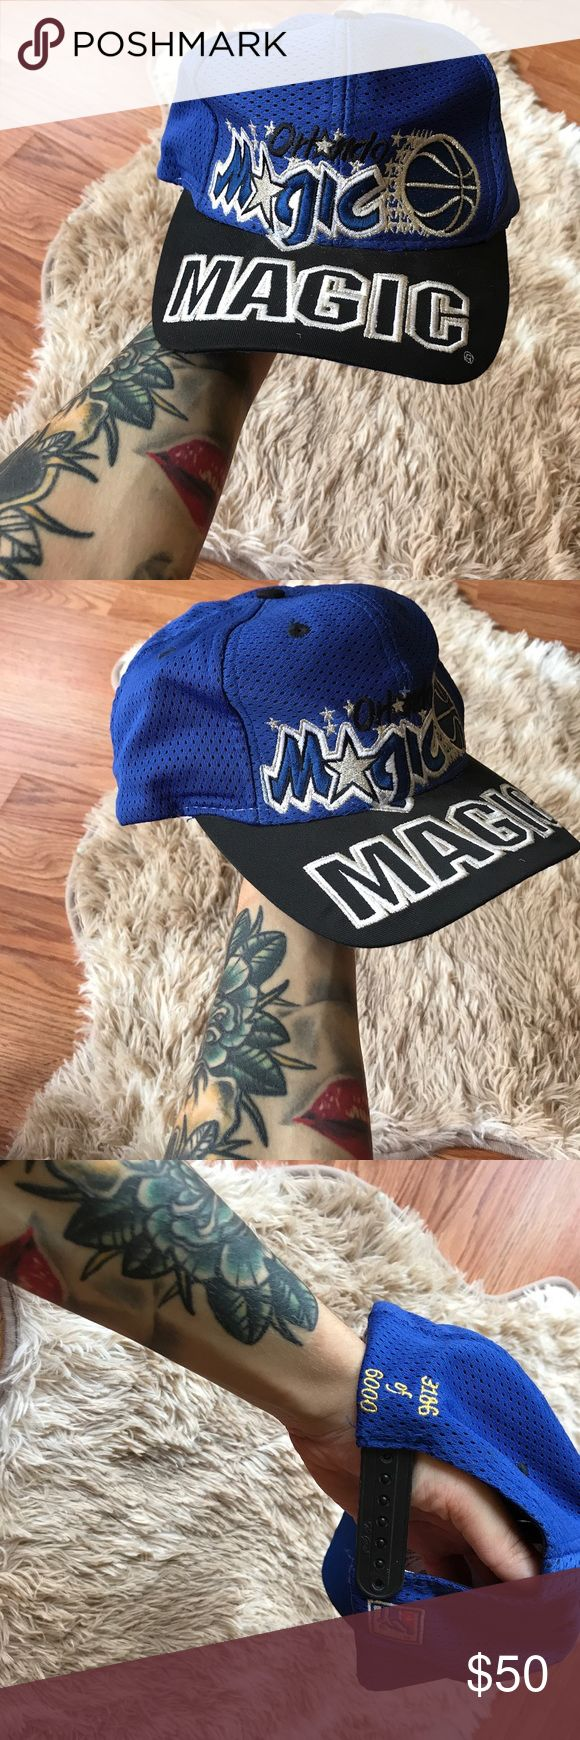 vintage | mesh orlando magic basketball snapback RARE! BRIGHT BLUE MESH ORLANDO MAGIC SNAPBACK HAT • size OS • great vintage condition; still extremely bright blue , all stitching + embroidery looks great. Few marks on inside from normal wear.  • # 3166 of 6000 made ----- #rare #snapback #basketball #nba  #shaquilleoneal #shaq #orlandomagic #vintage #vtg #retro #vintagehat #vintagecap Vintage Accessories Hats